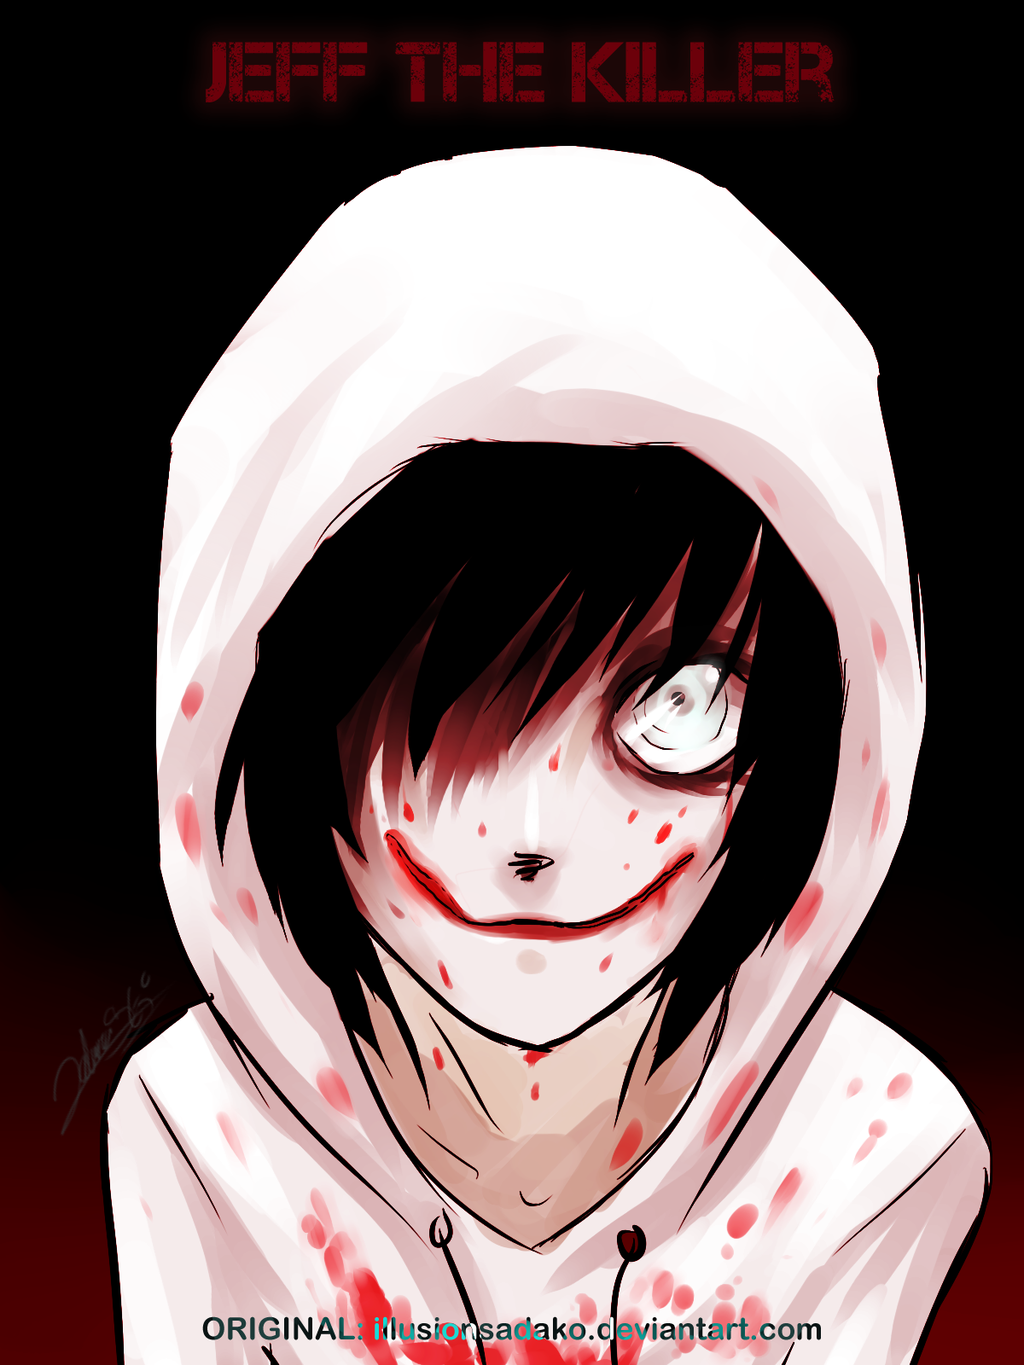 Which creepypasta is most likely to kill Jeff the Killer?